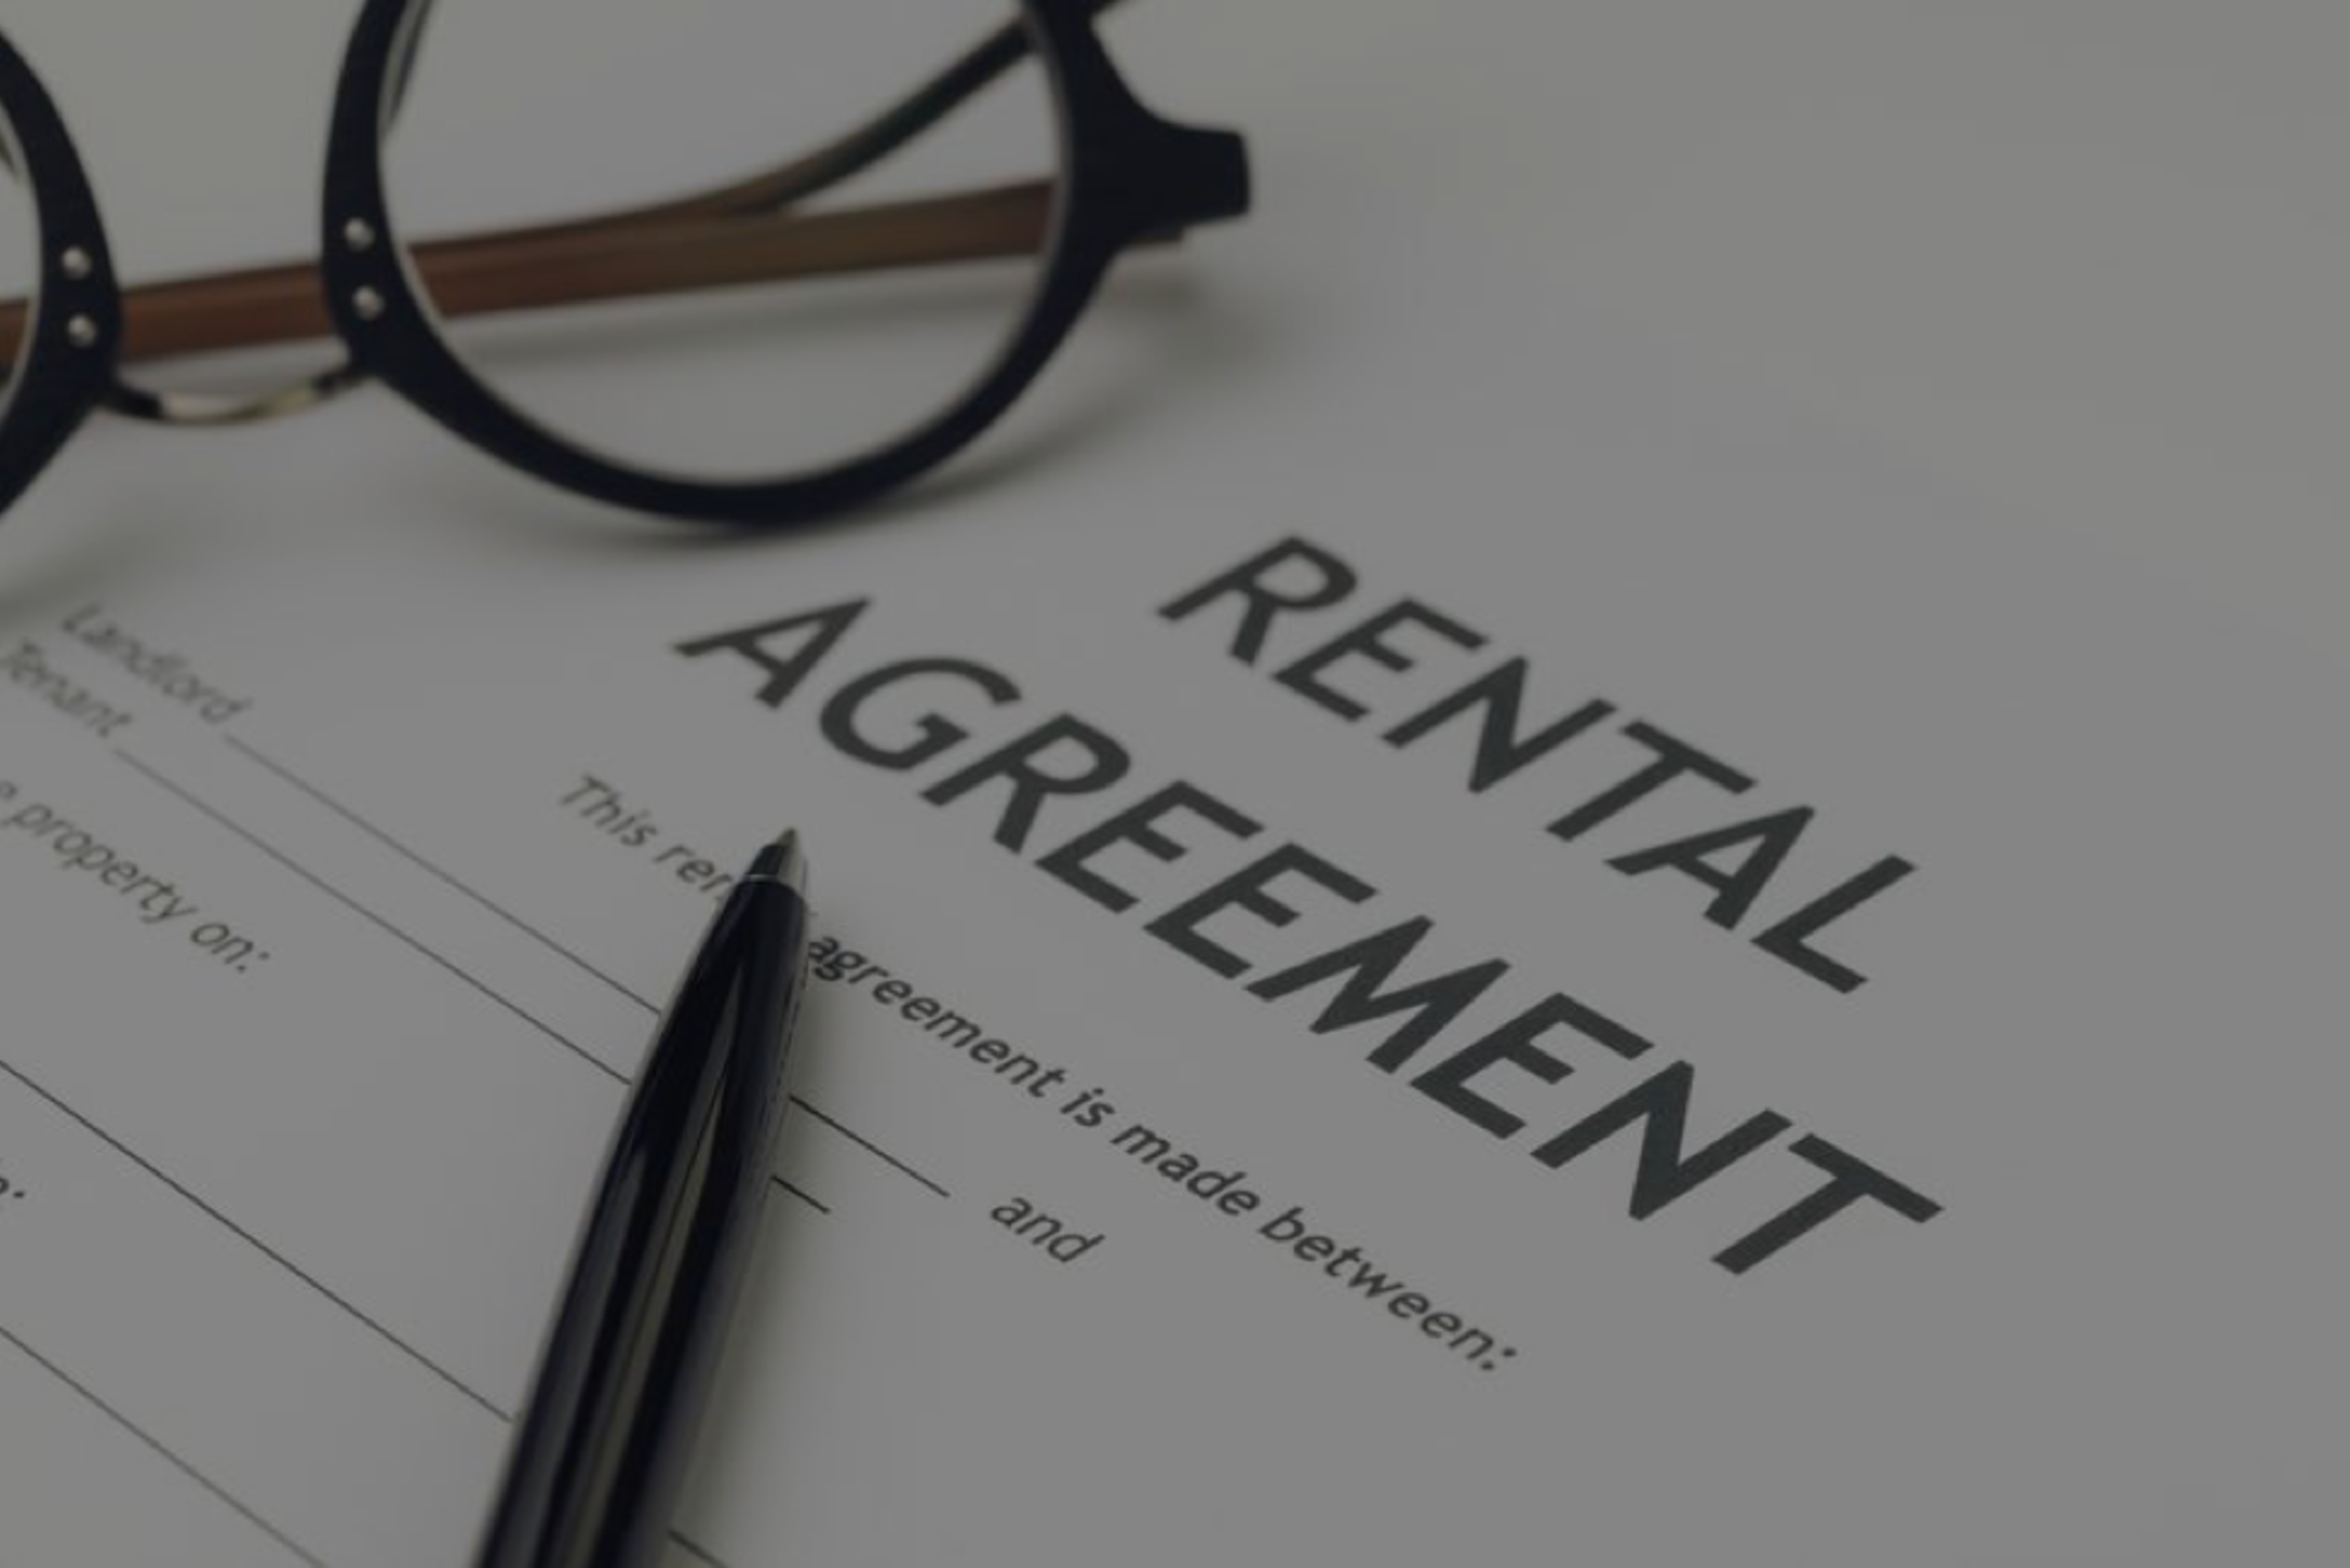 Factors That Can Impact a Rental Agreement